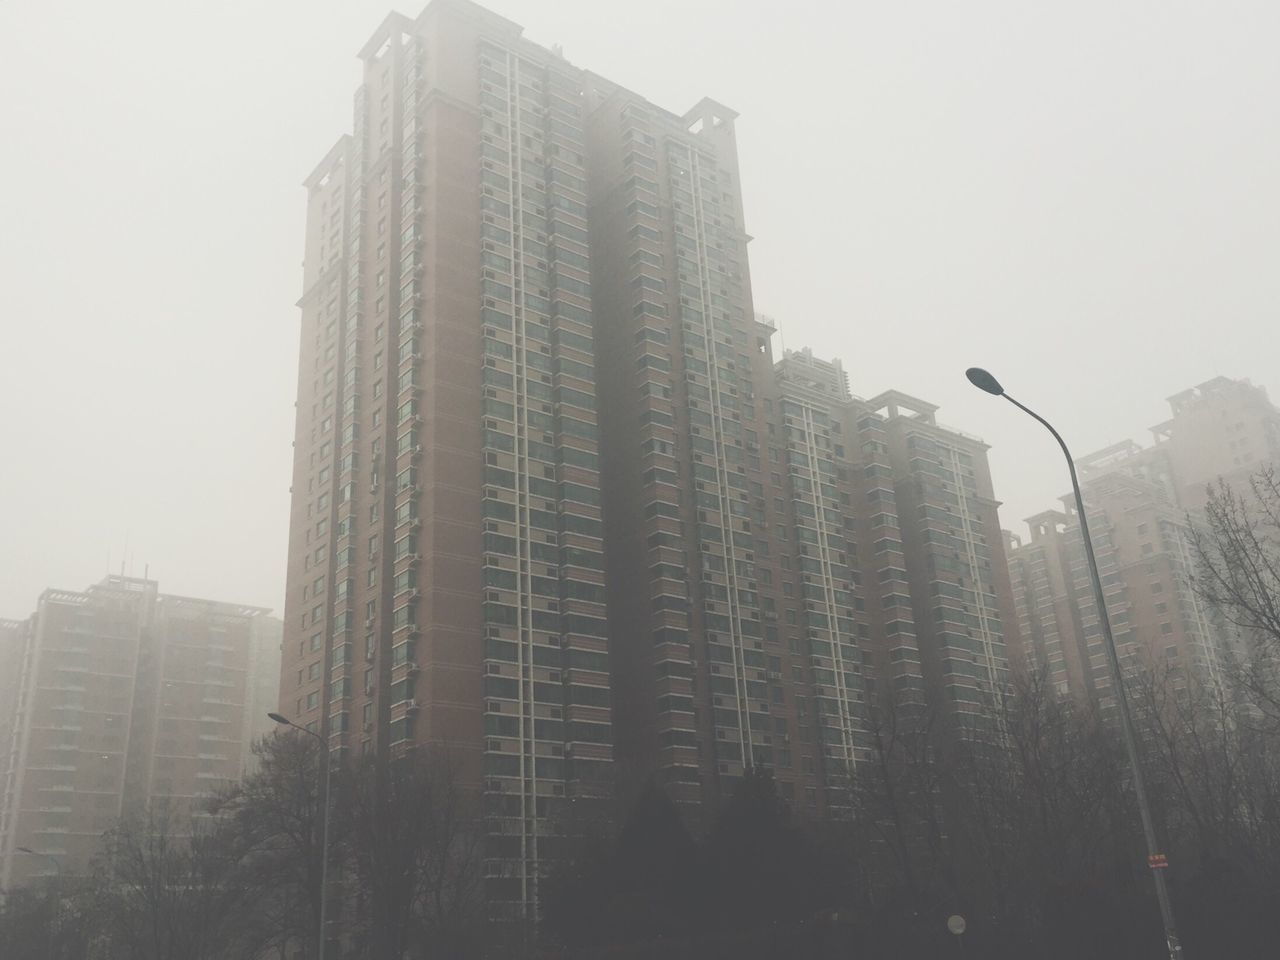 city, skyscraper, architecture, fog, low angle view, building exterior, day, tree, no people, outdoors, modern, sky